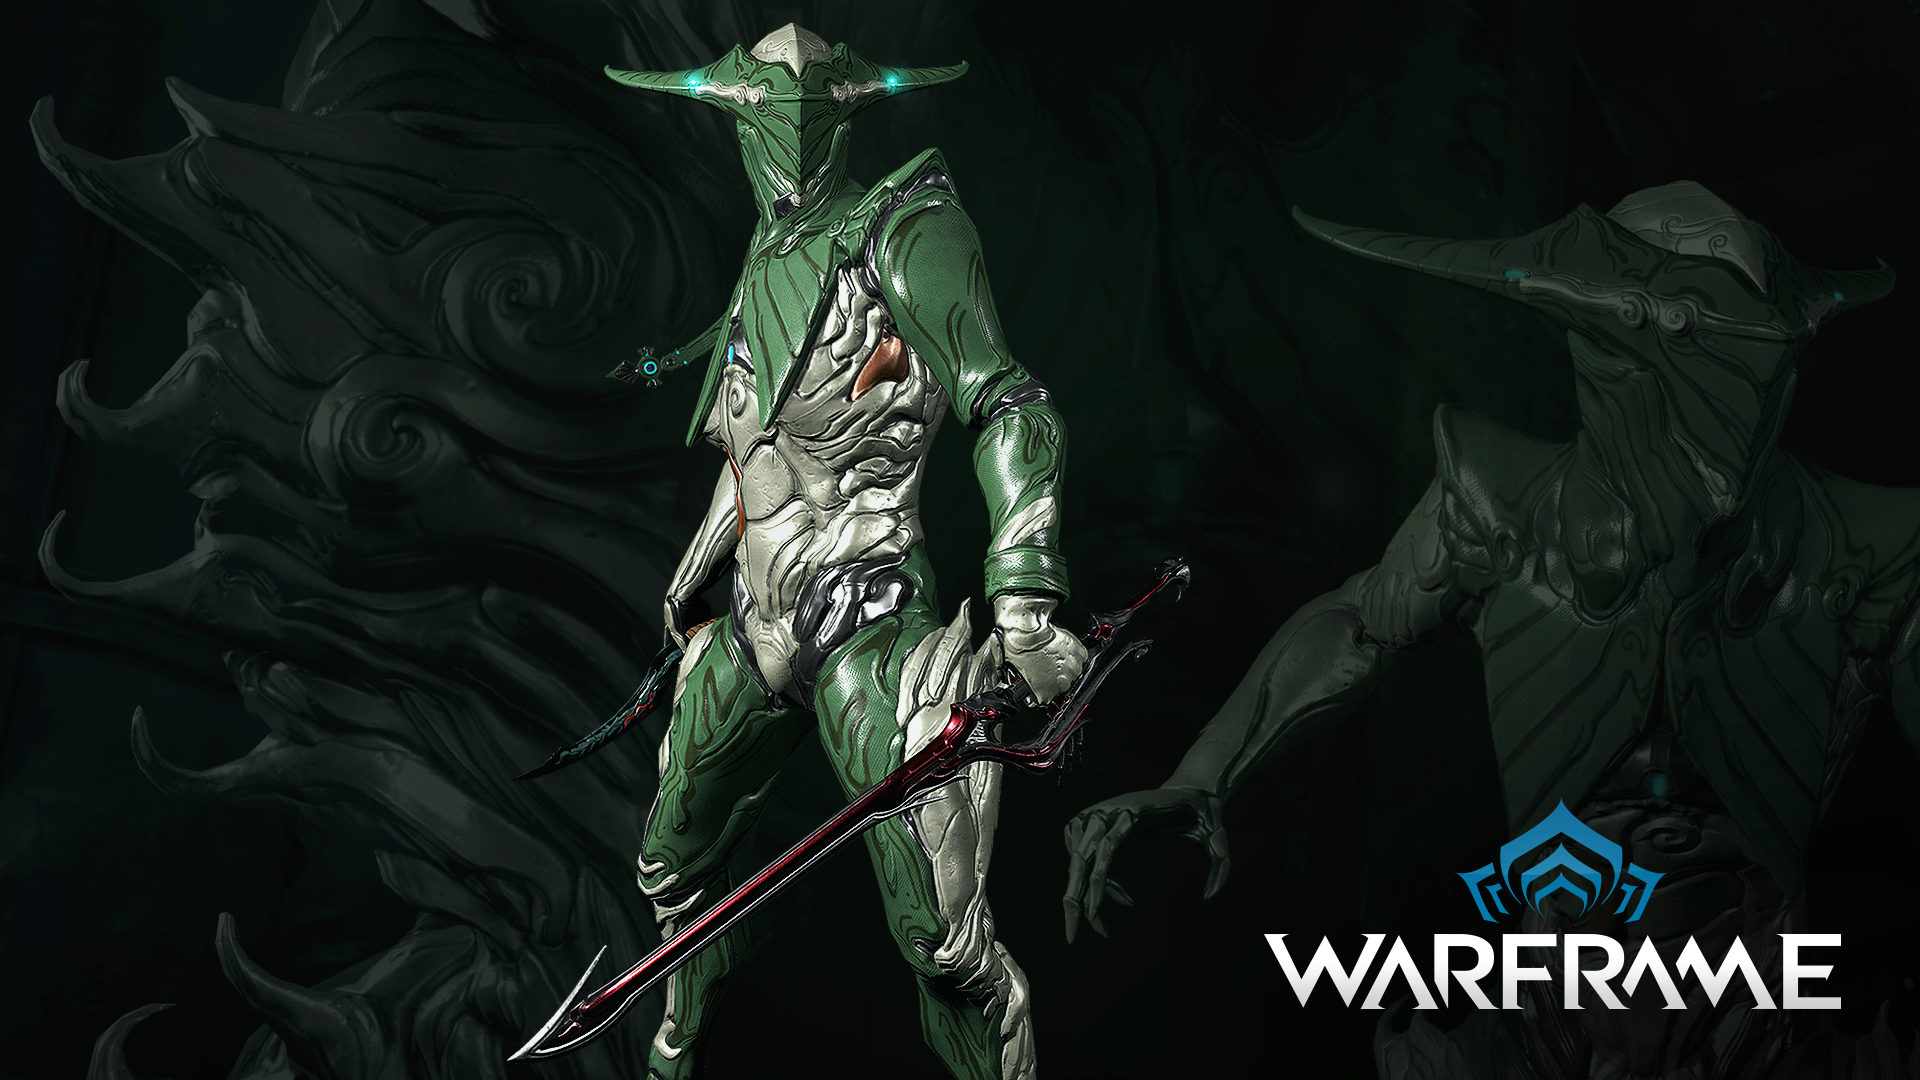 warframe ring of fire finally arrives